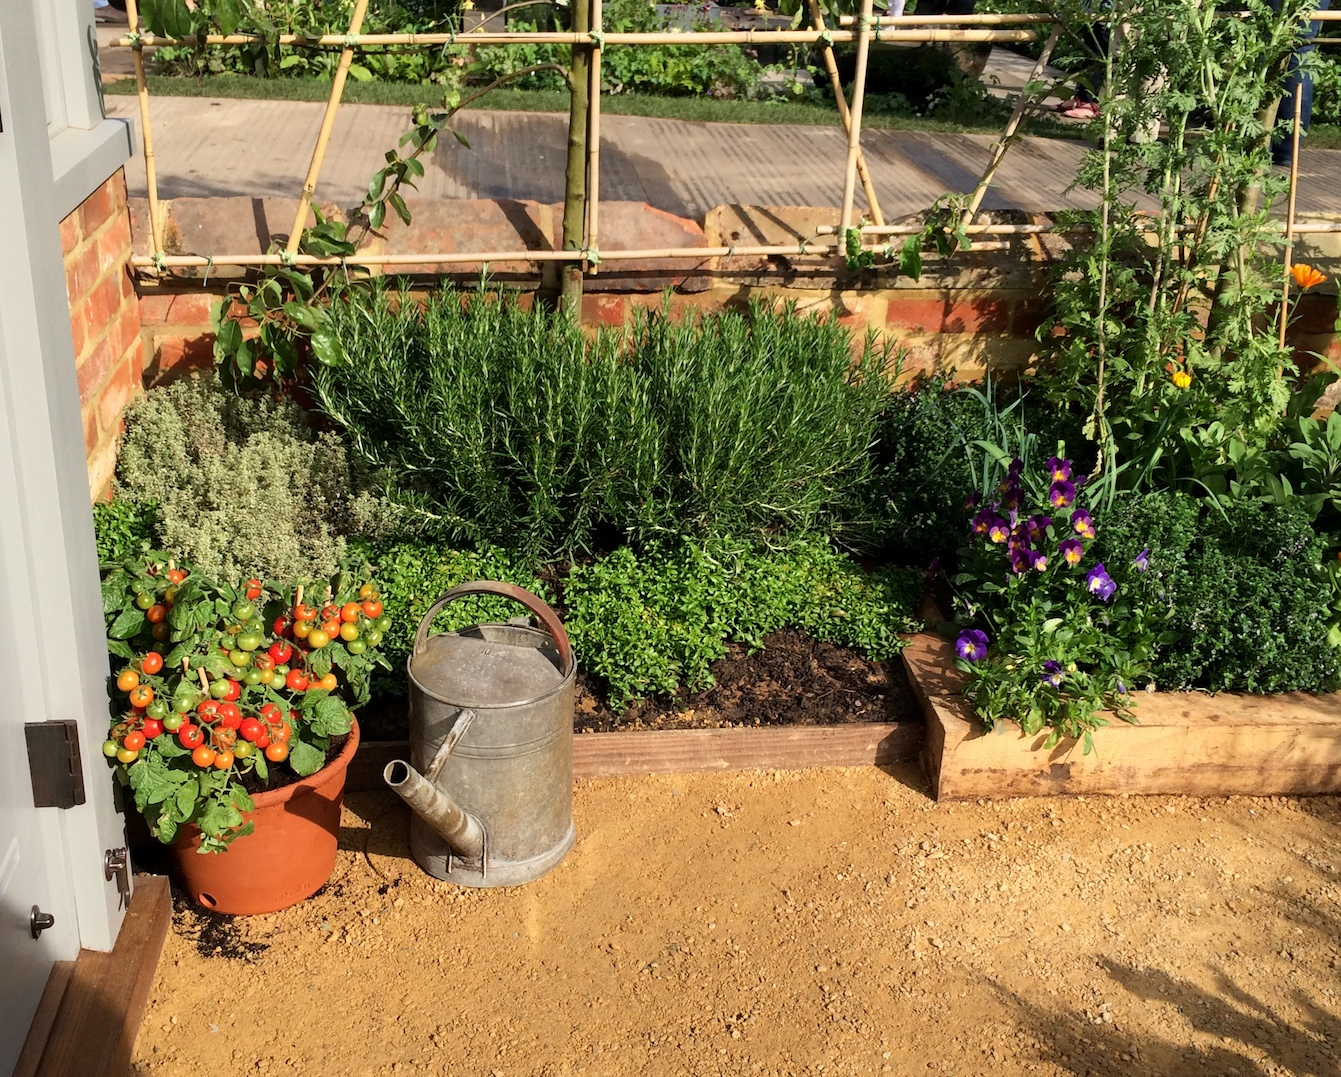 Herbs and cherry tomatoes